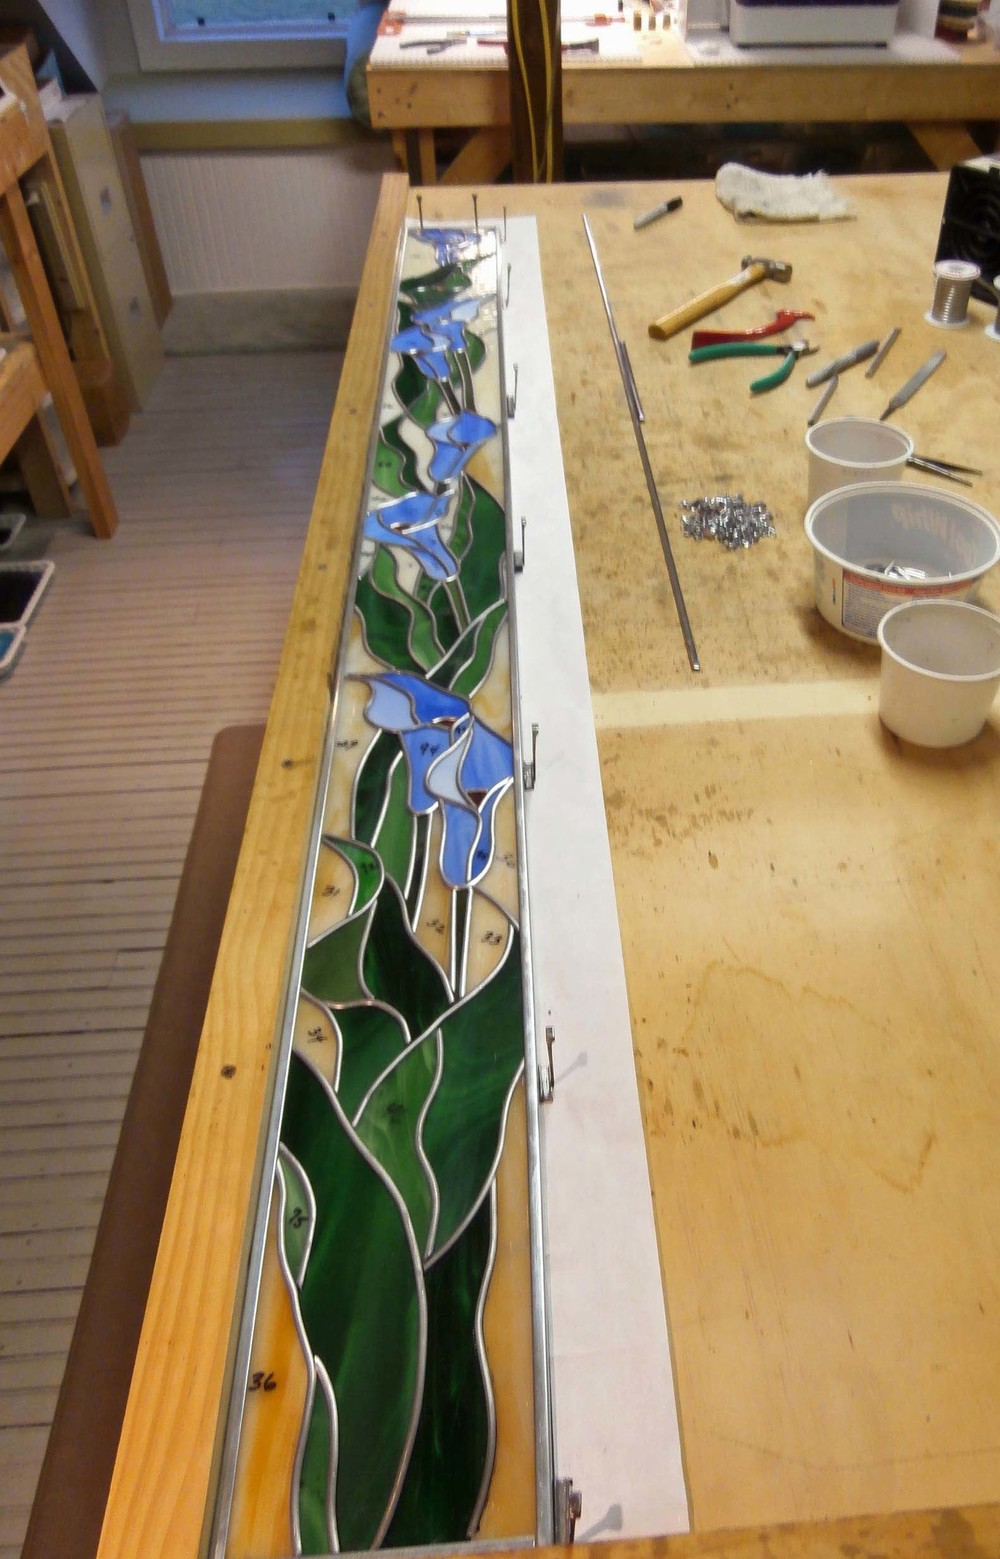 Finished leading and added the zinc borders.